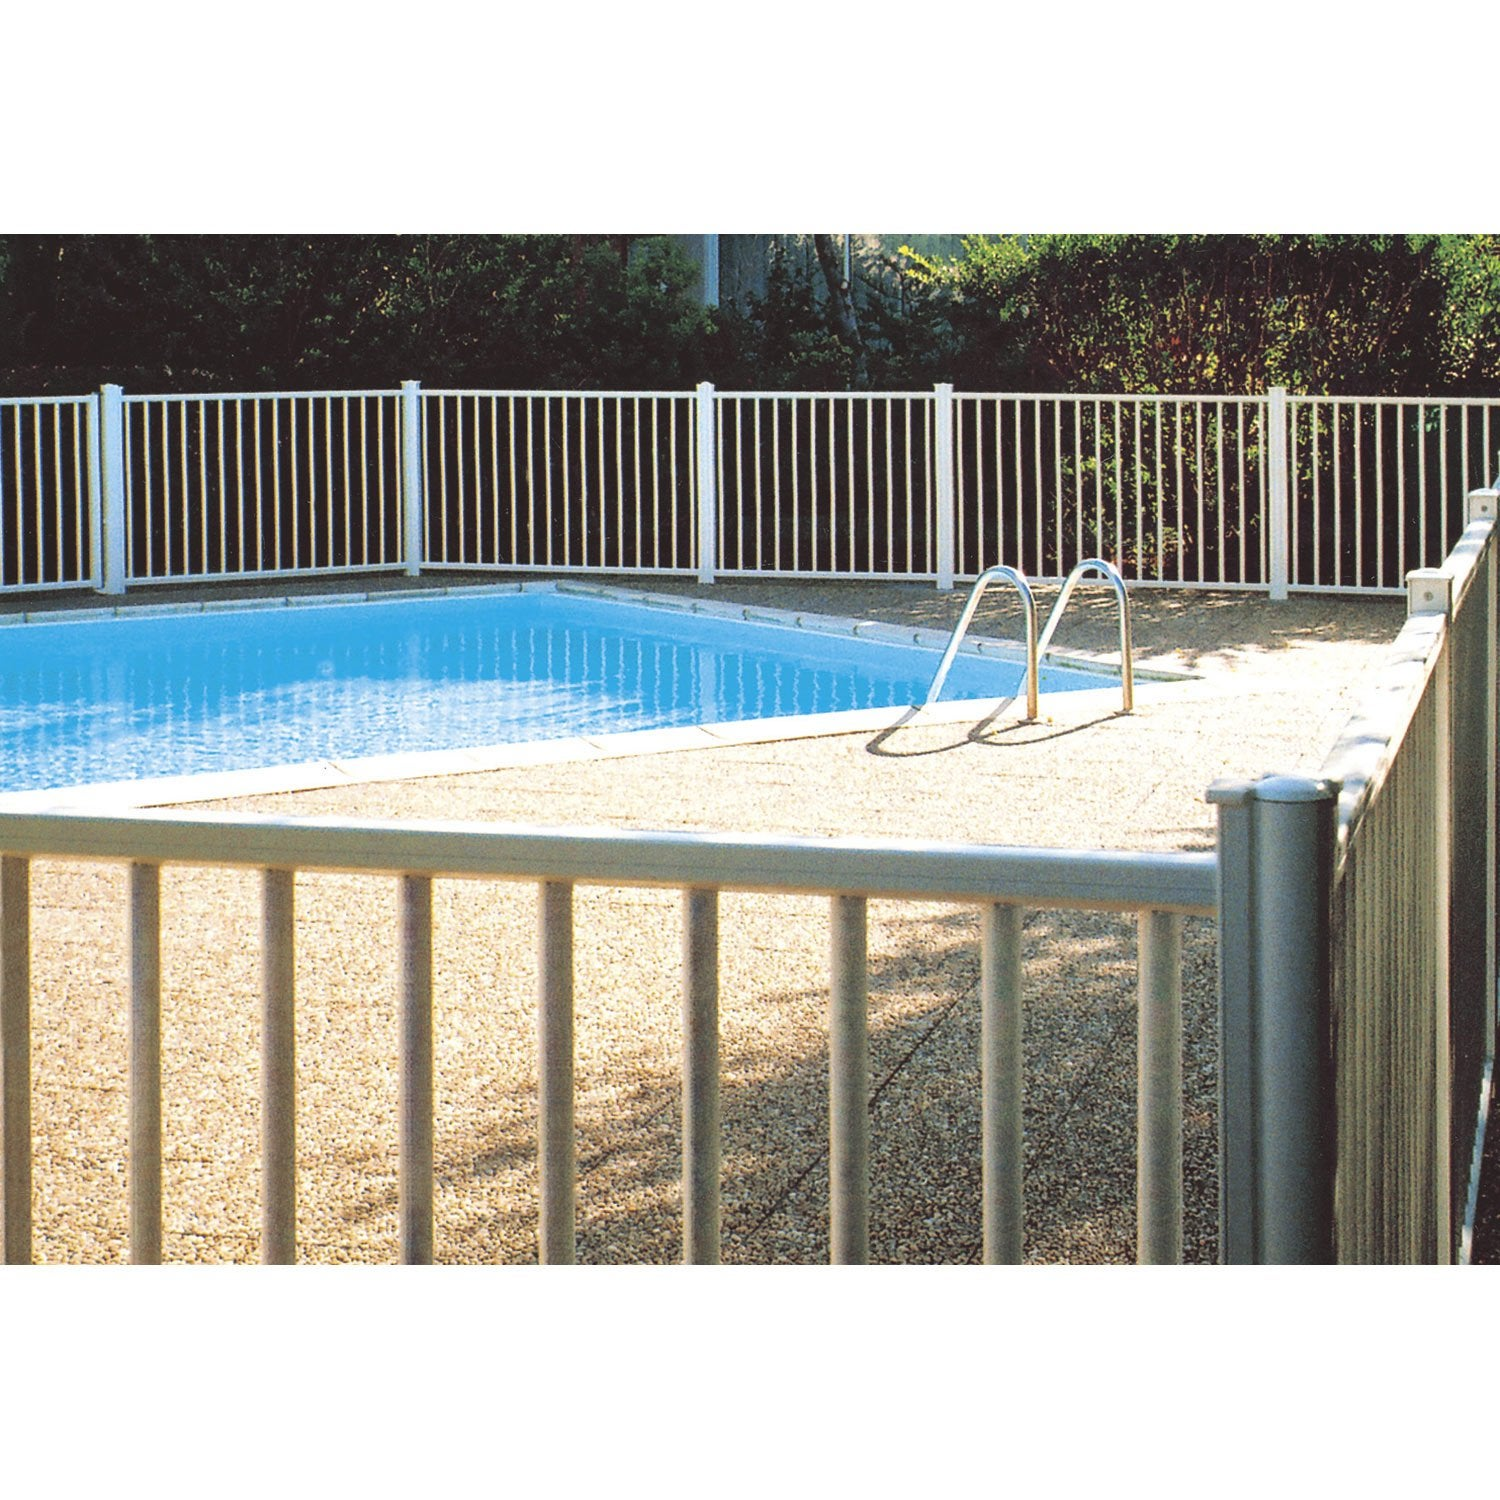 Barri re pour piscine aluminium issambres blanc 9010 h for Cloture amovible pour piscine